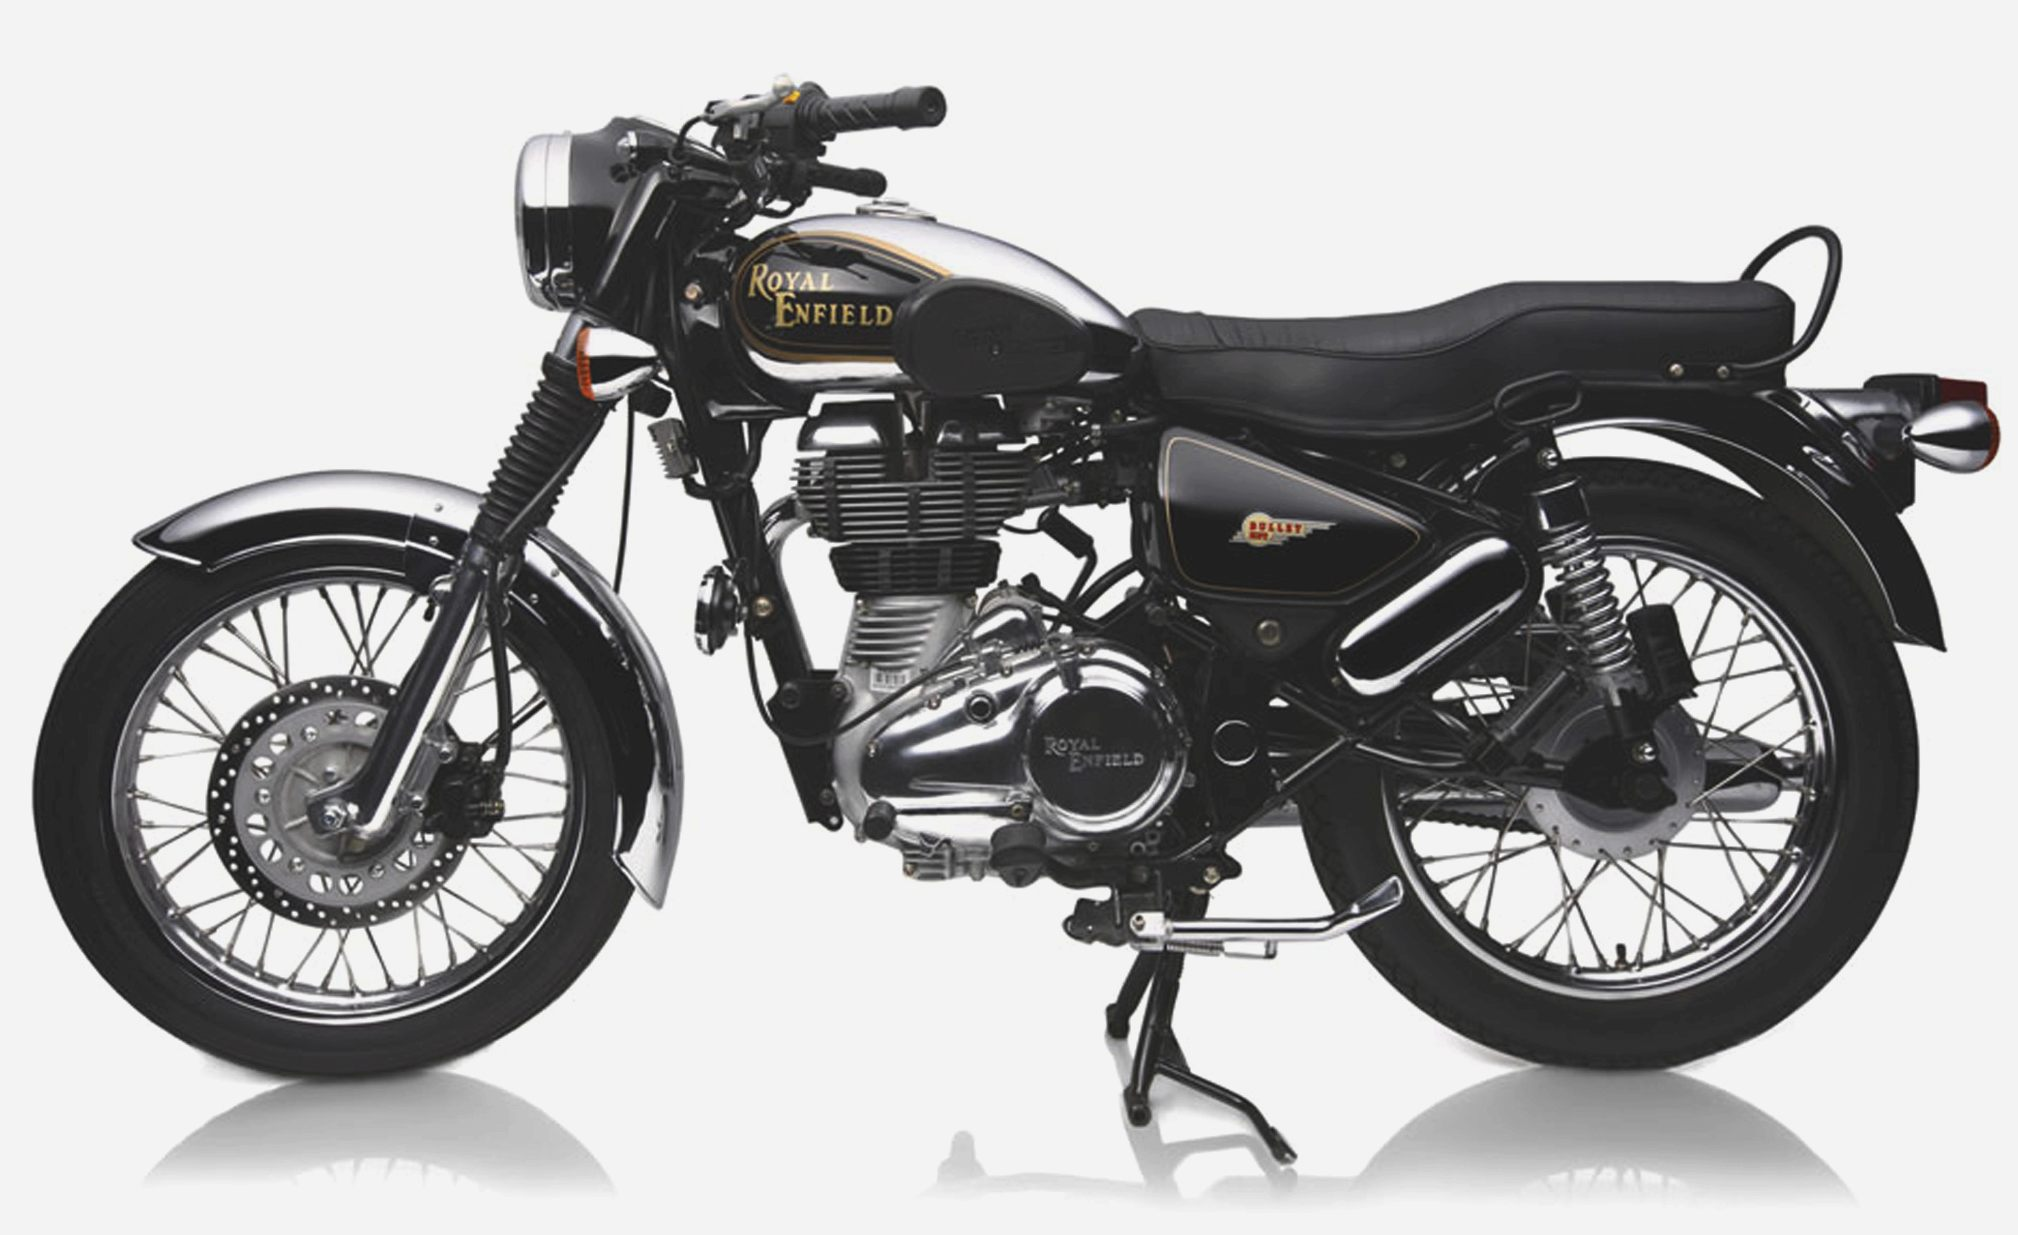 Royal Enfield Bullet 500 Army 2001 images #126037